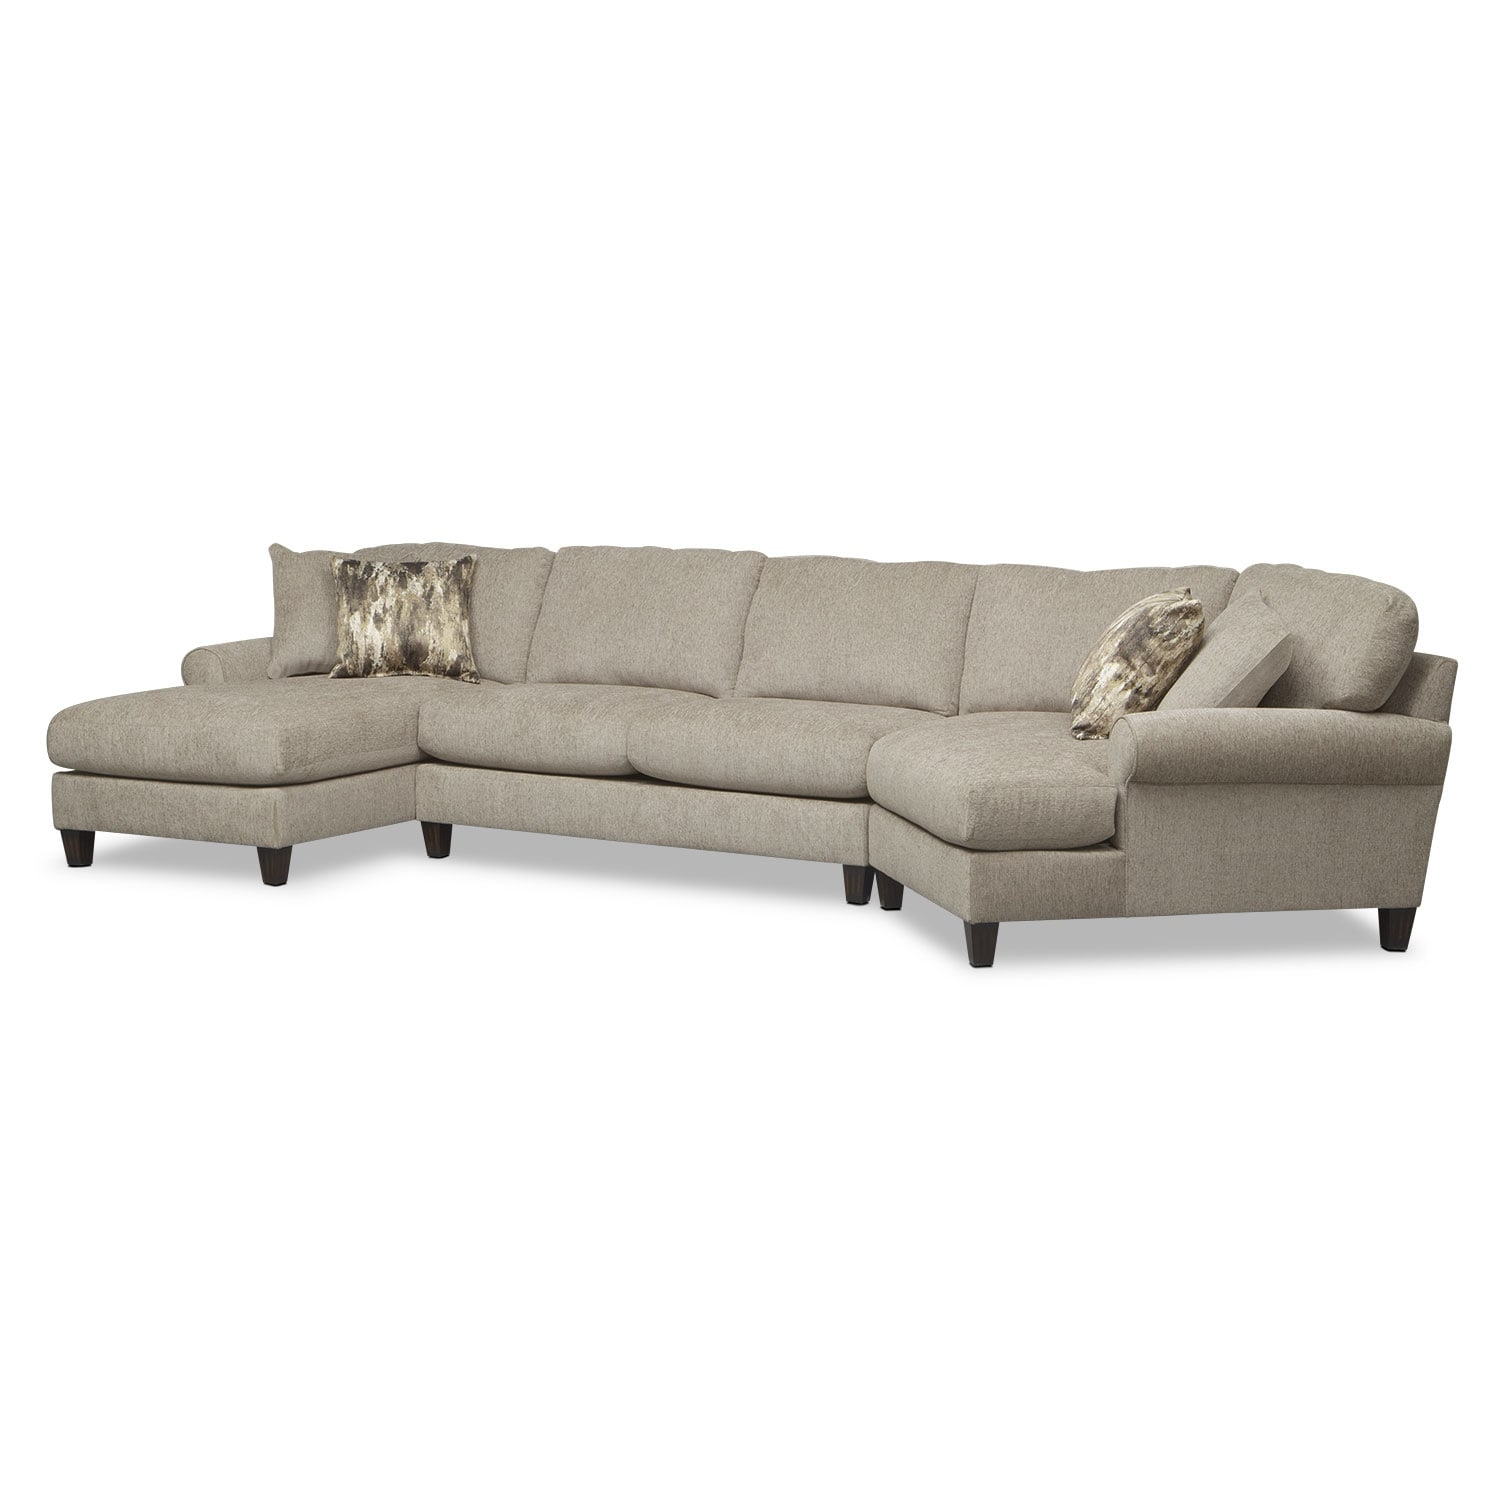 Living Room Furniture - Karma Mink 3 Pc. Sectional with Right-Facing Cuddler and Left